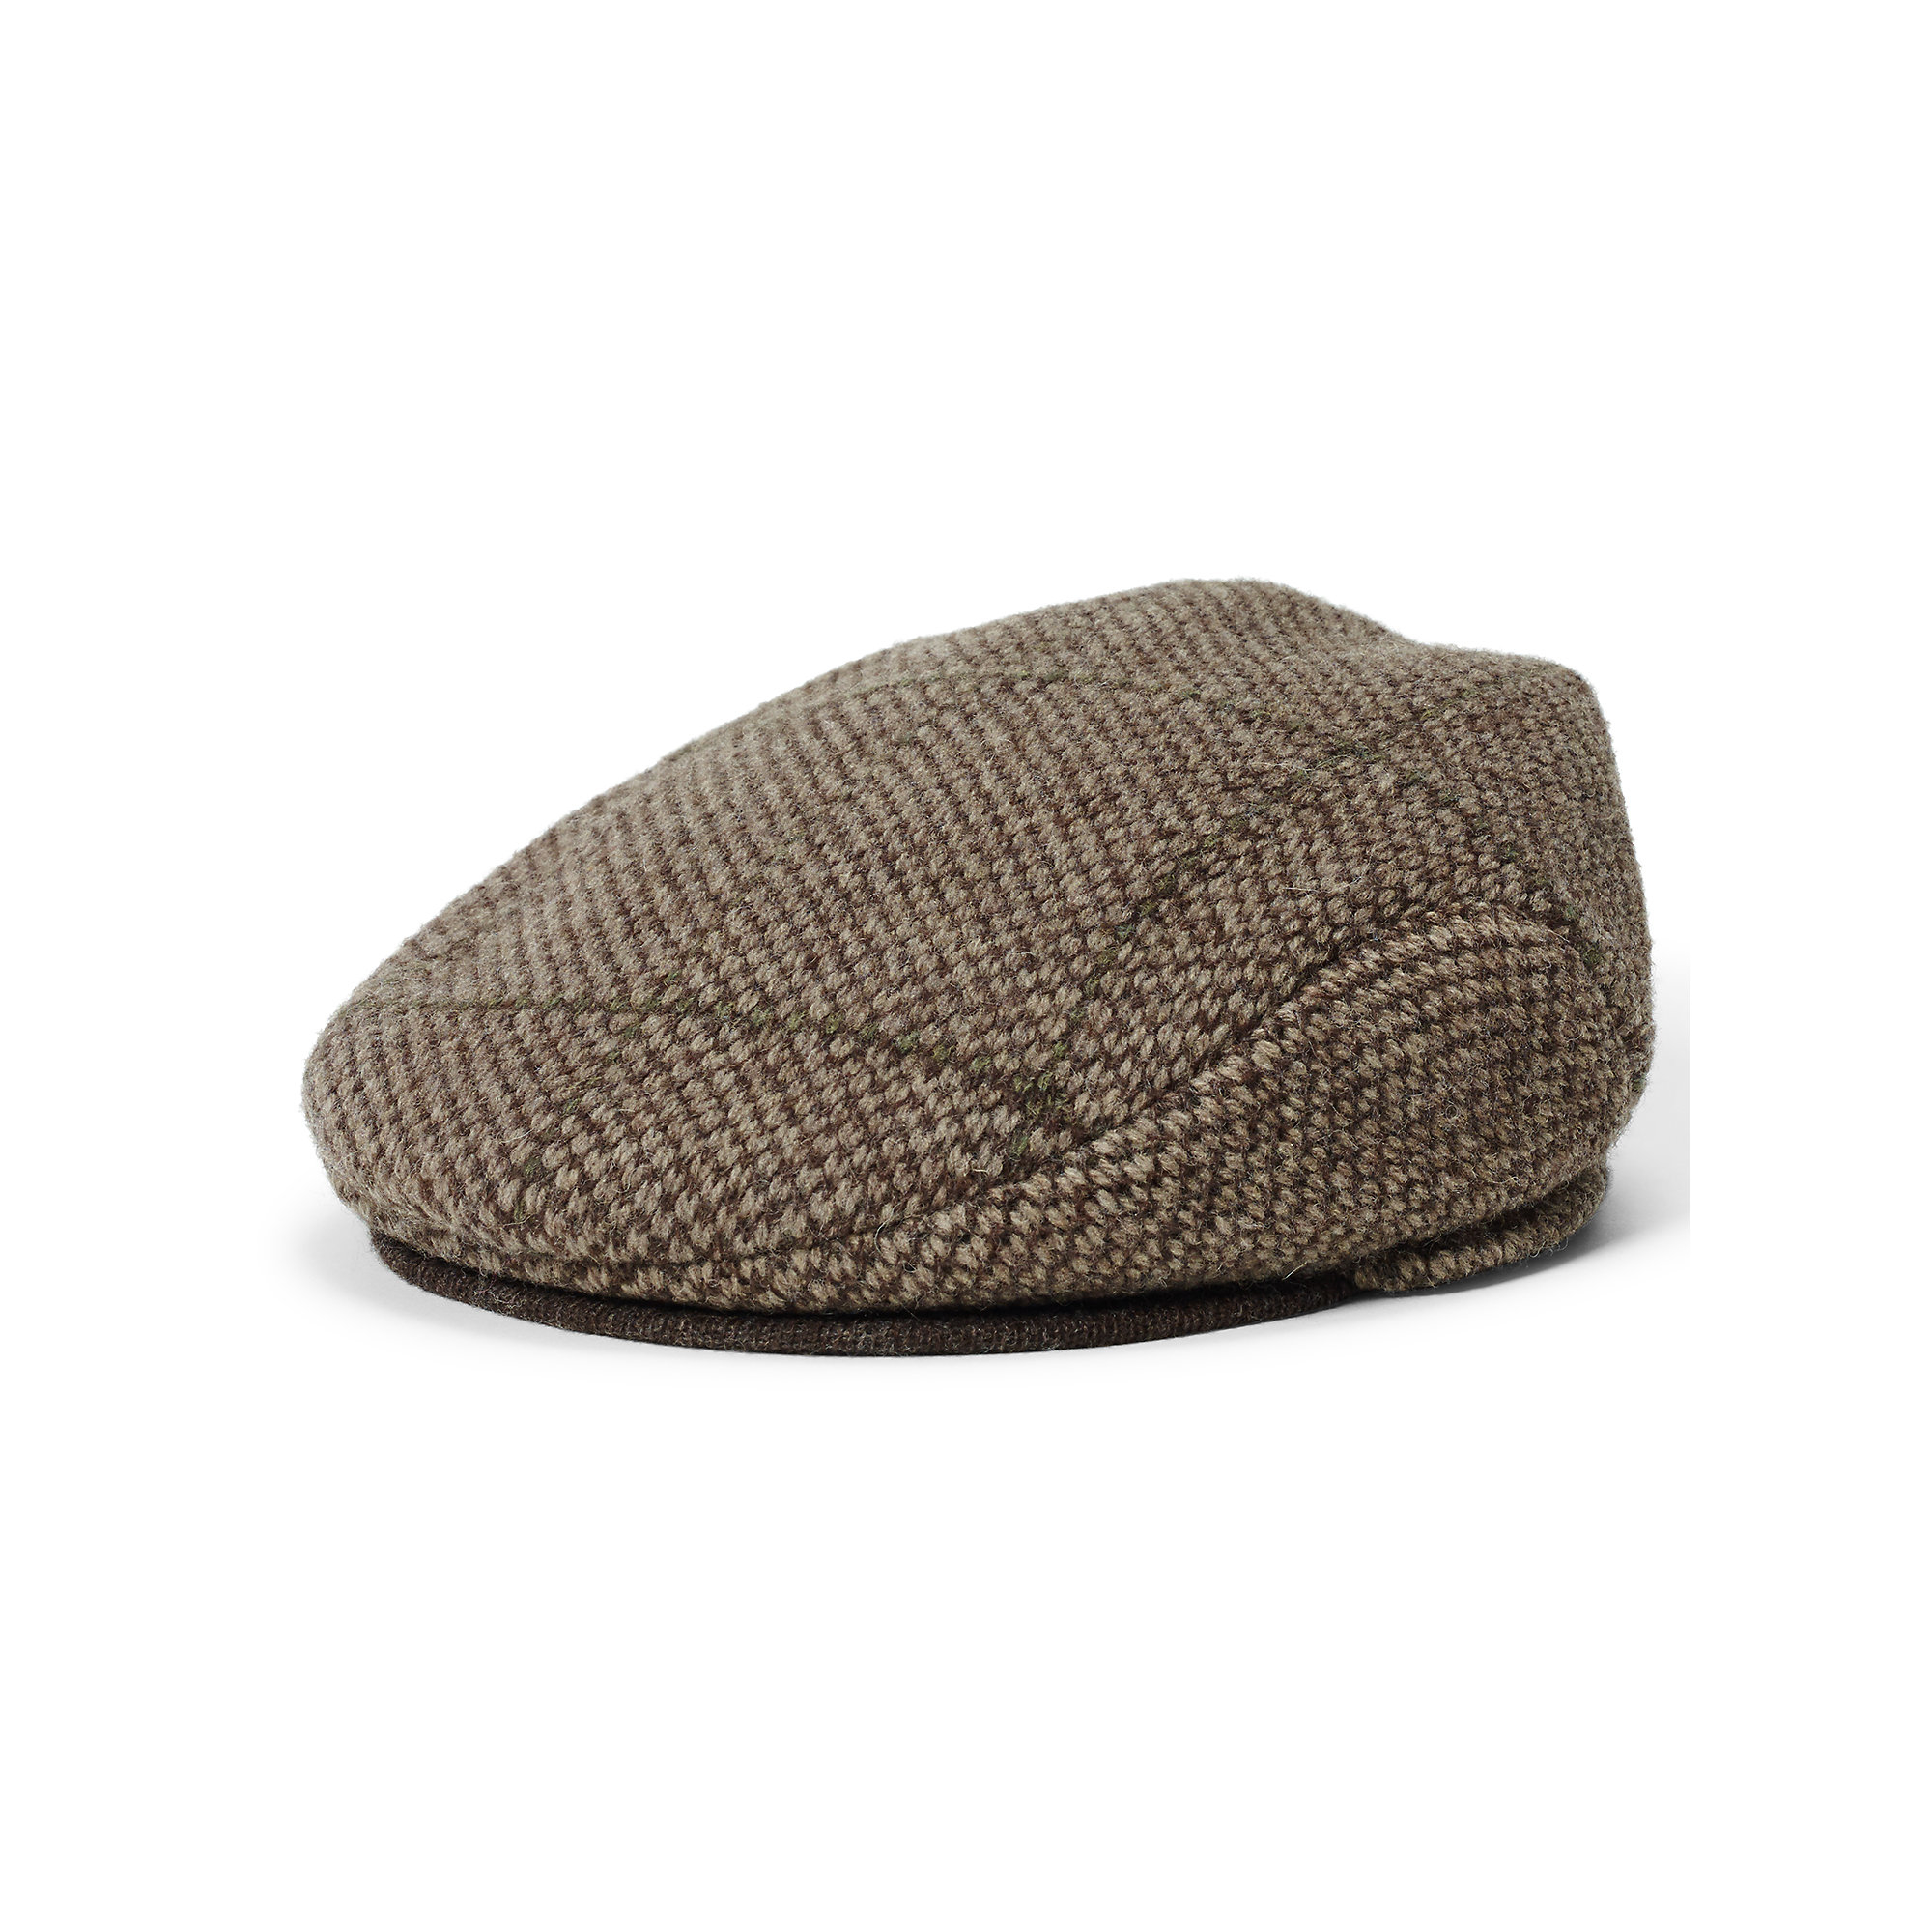 polo ralph lauren windowpane wool driving cap in brown for. Black Bedroom Furniture Sets. Home Design Ideas